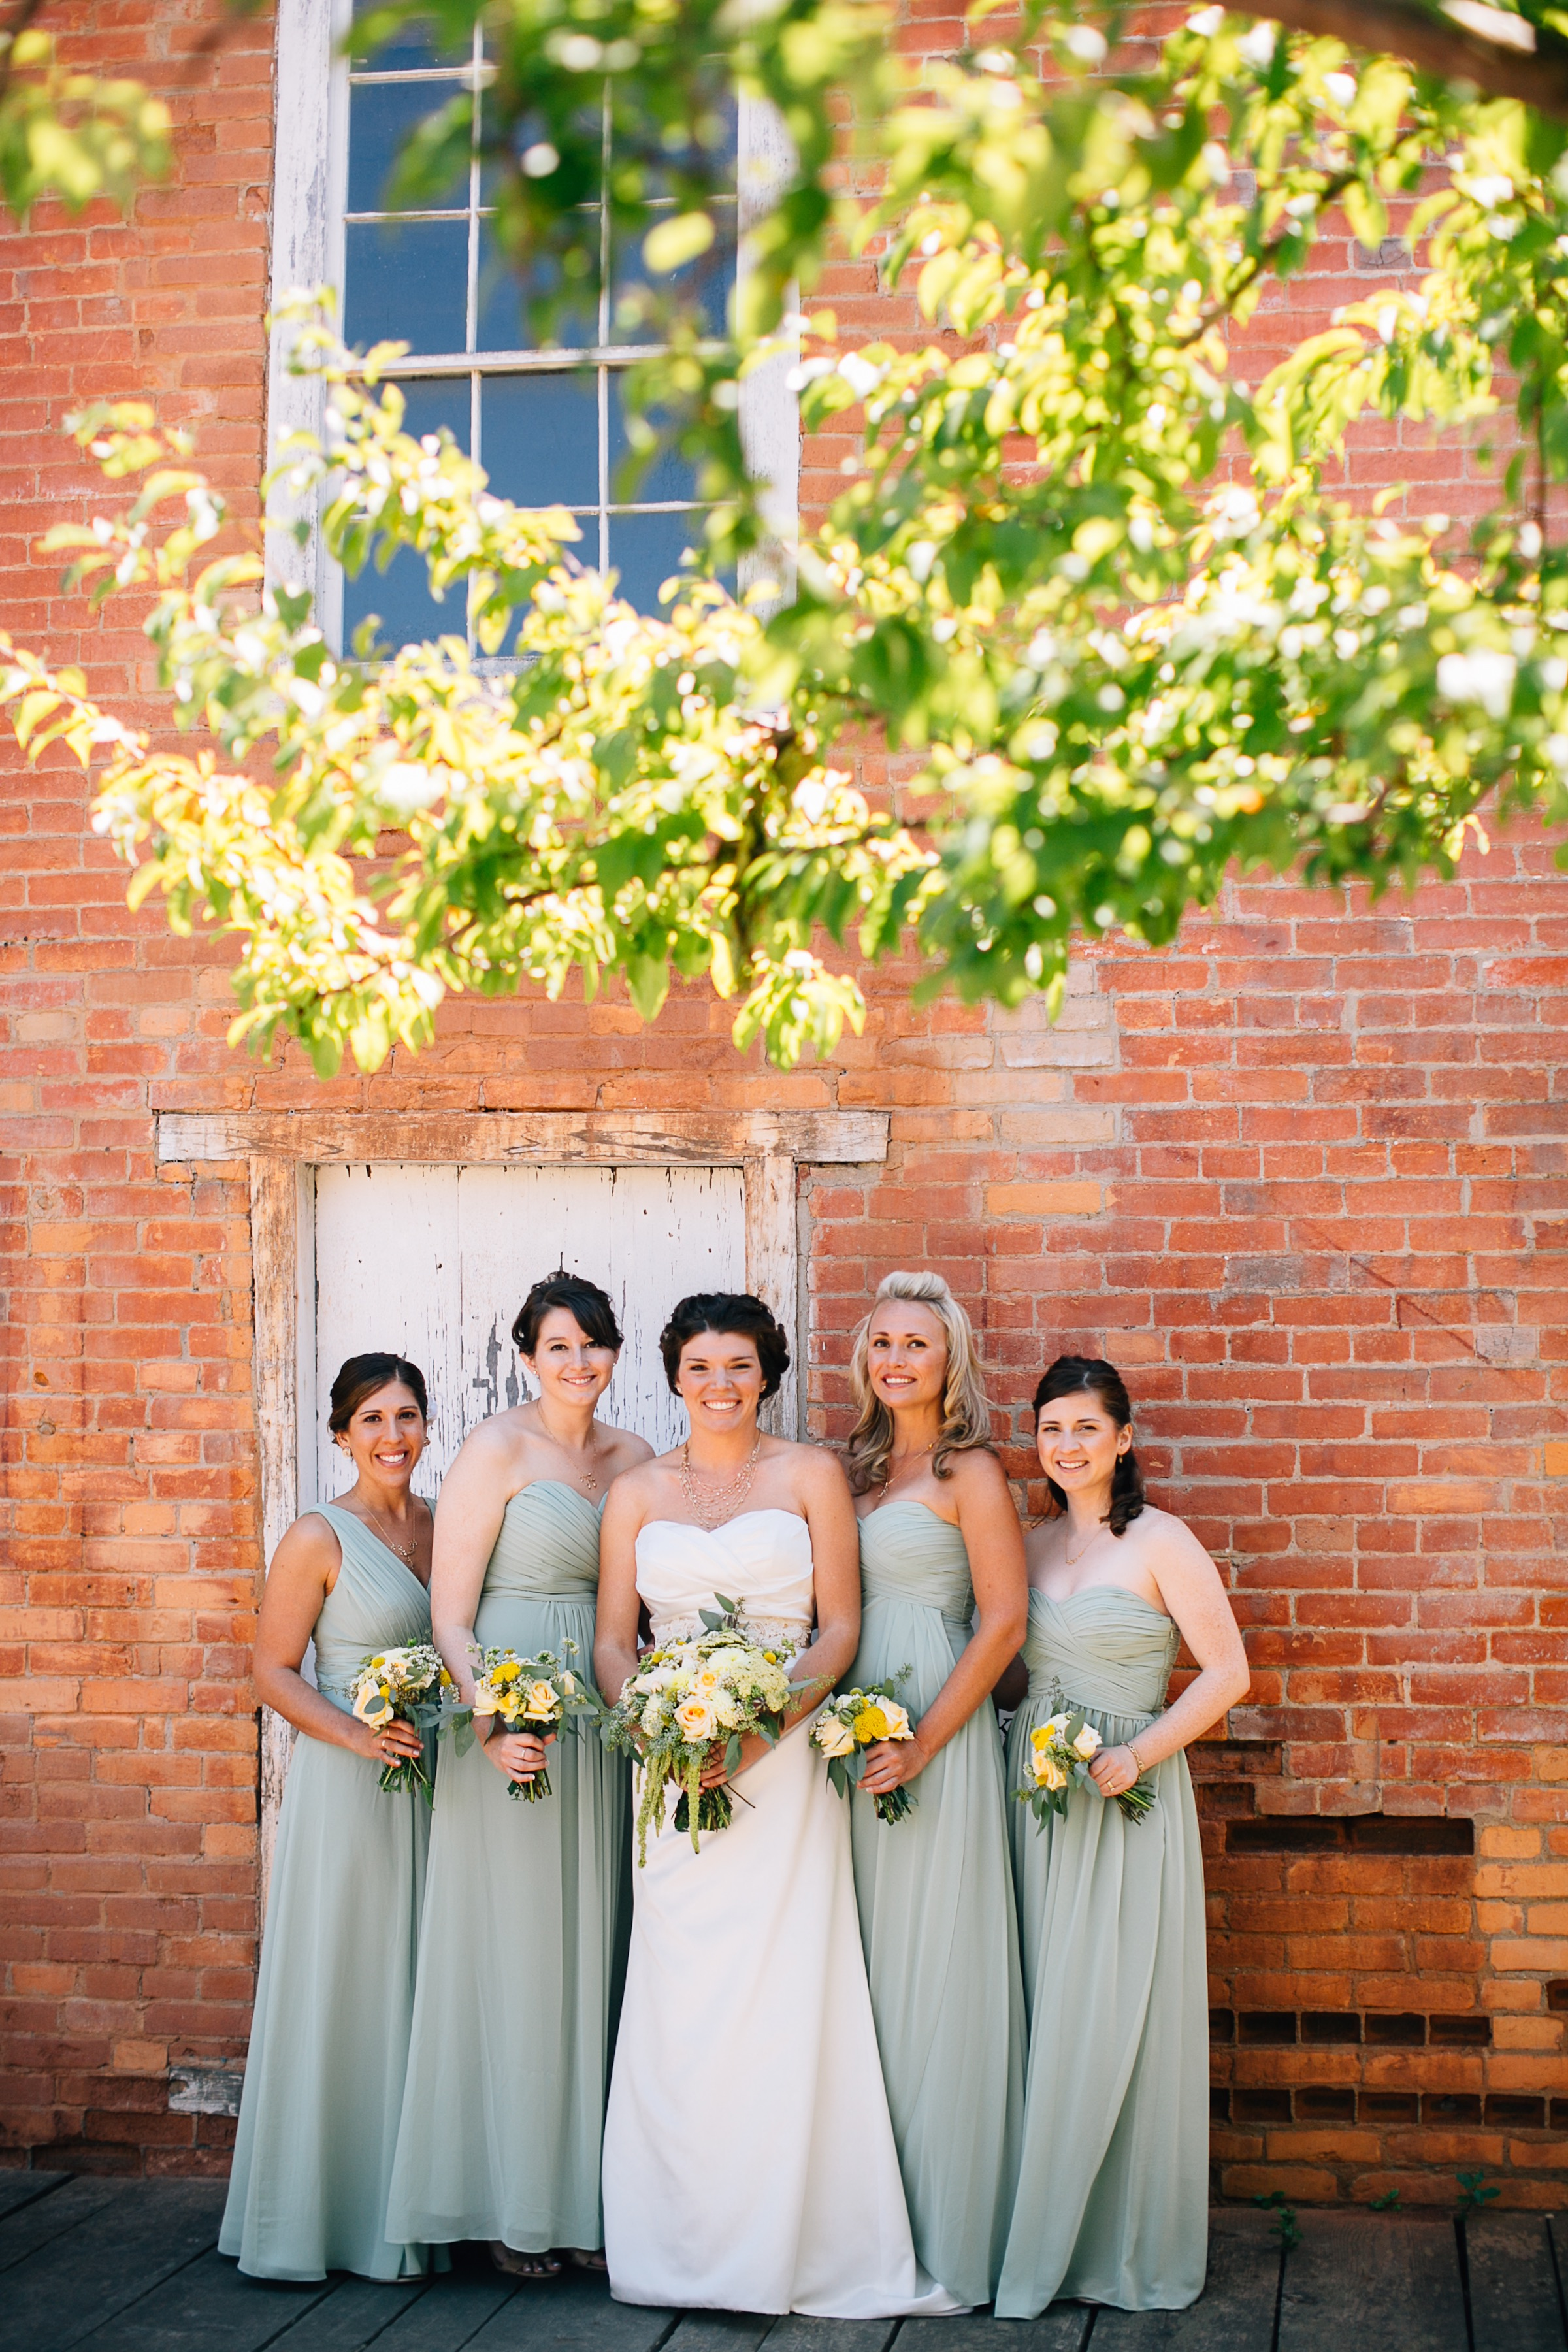 Bride and Bridesmaids with Bouquets by Big Sur Flowers